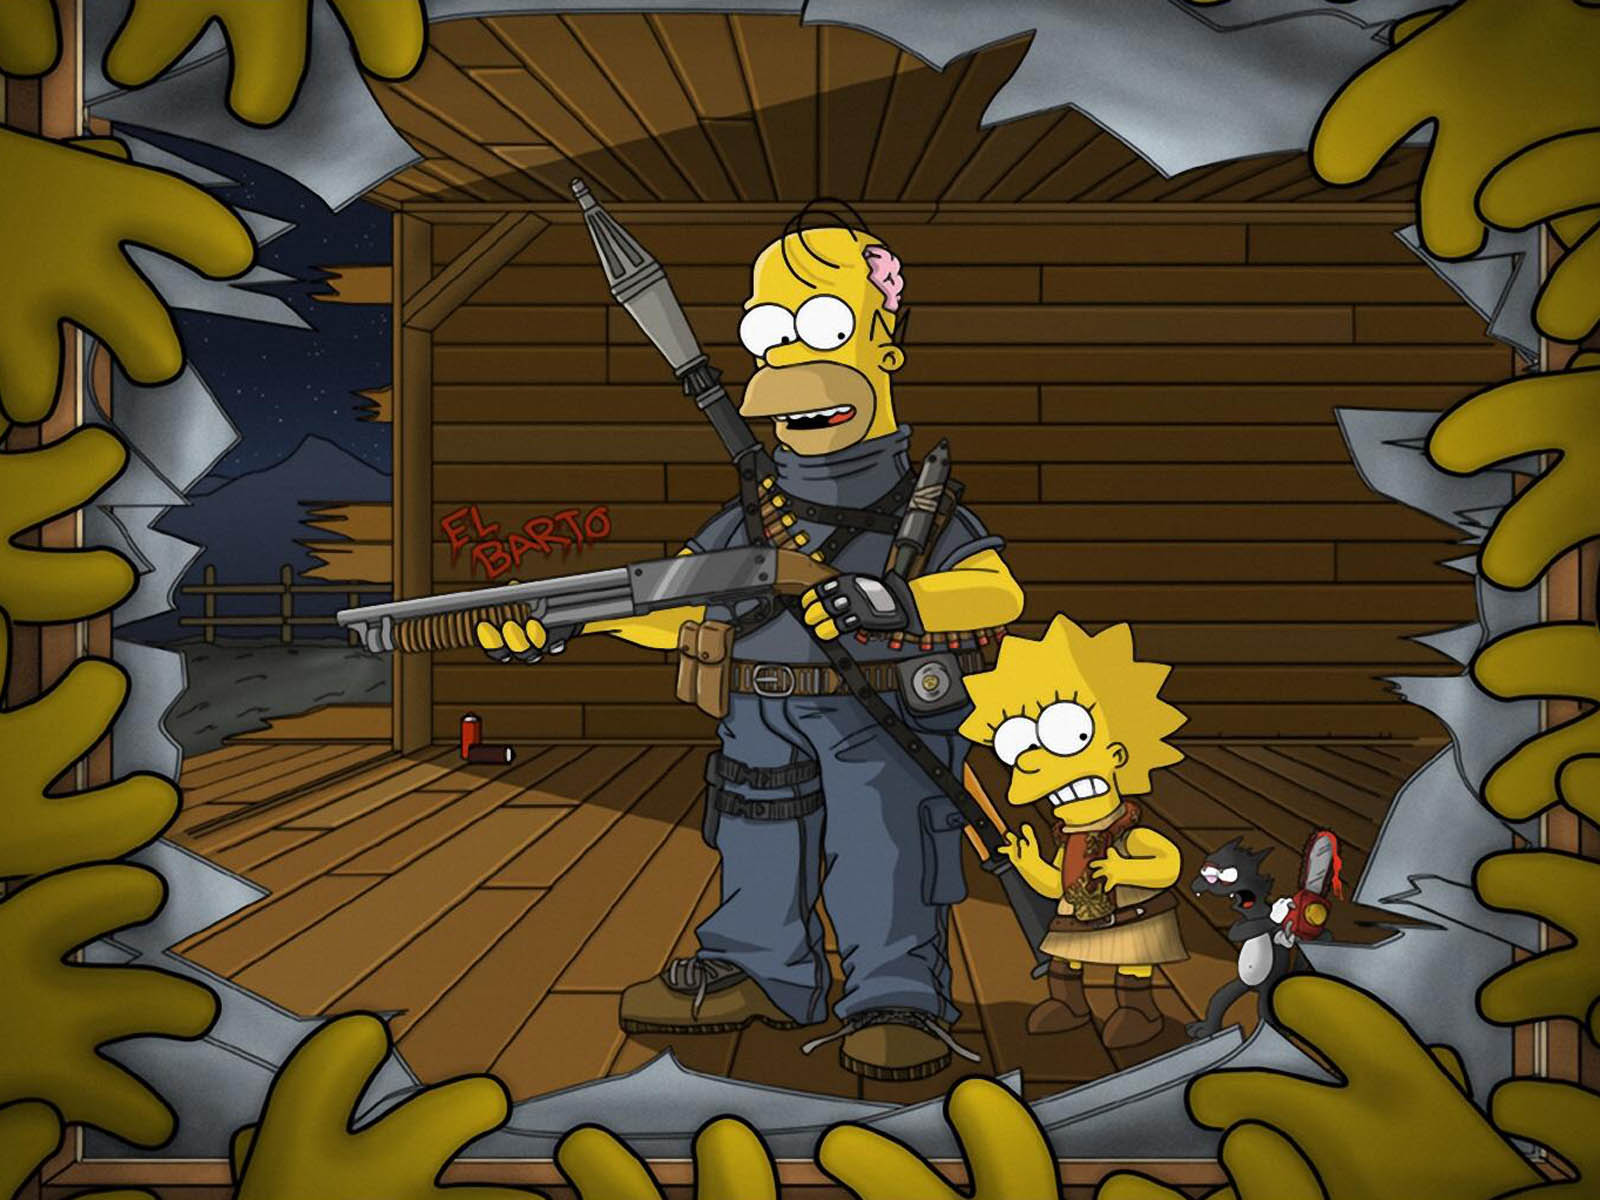 The Simpsons Wallpaper 1600x1200 Wallpapers 1600x1200 Wallpapers 1600x1200